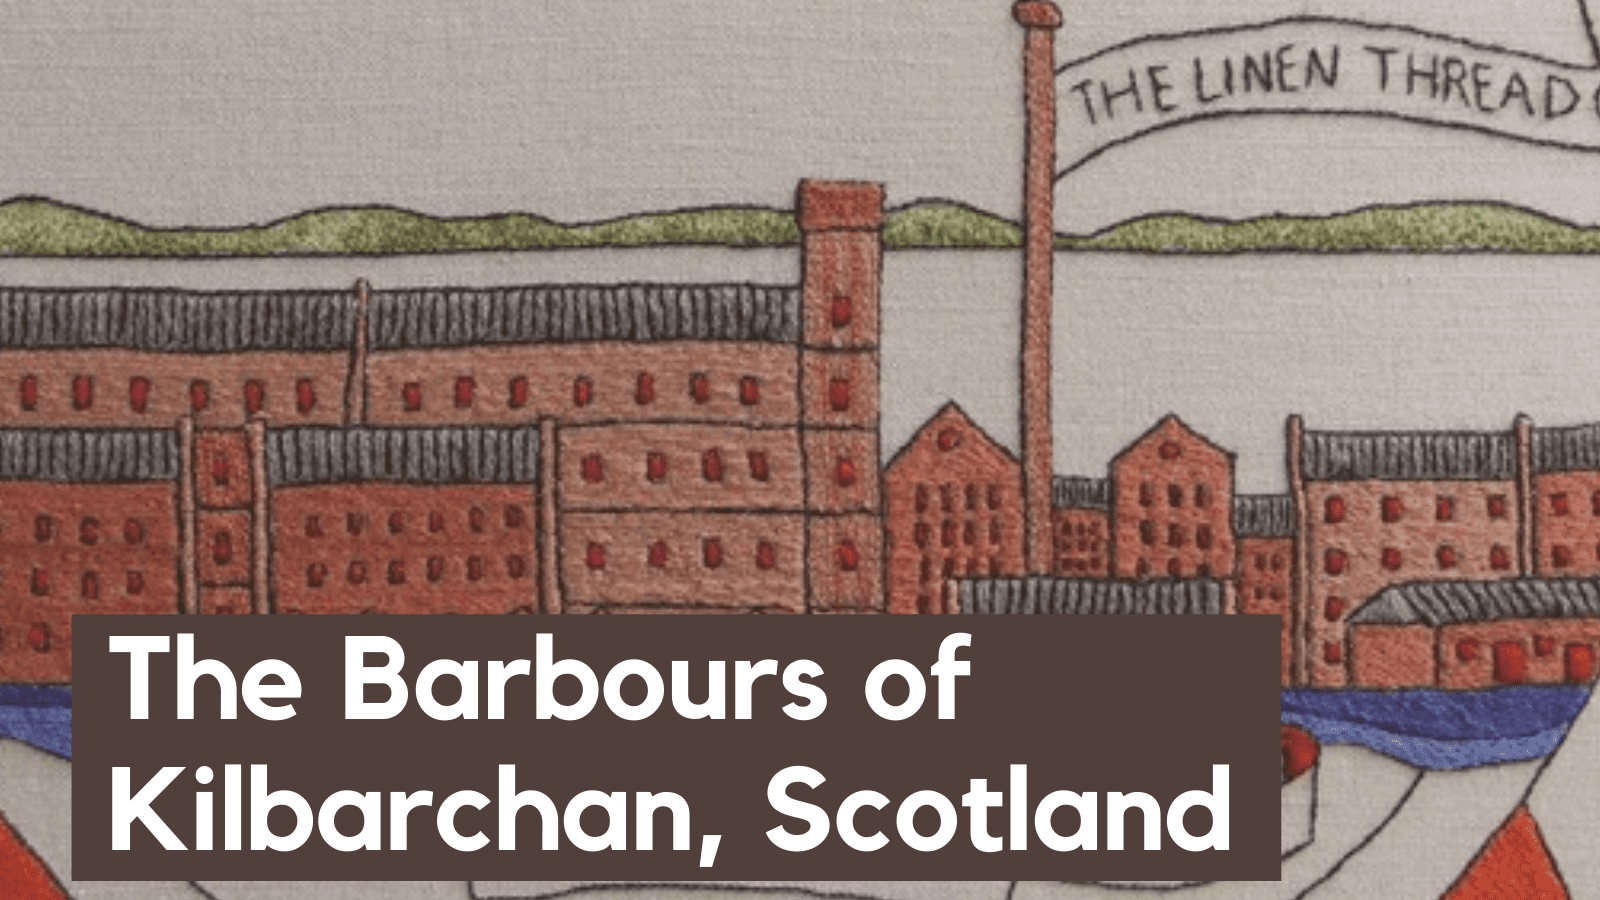 Barbours of Kilbarchan